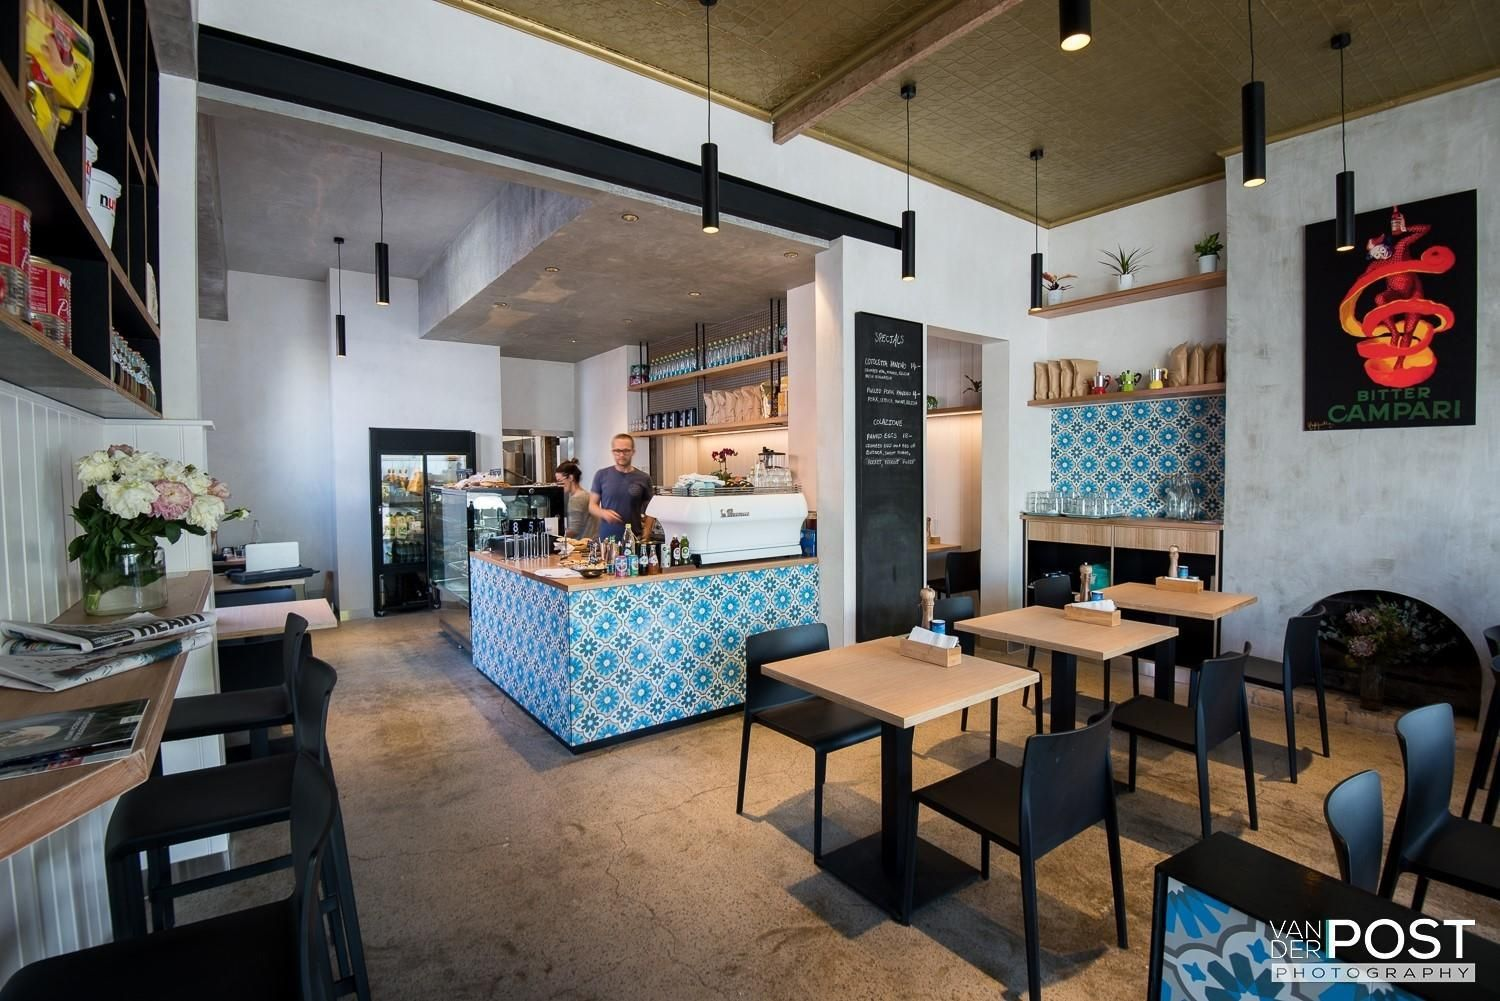 Cucina Restaurant Hillarys Pin By Bookmarc On Dining Pinterest Architect Design Dining